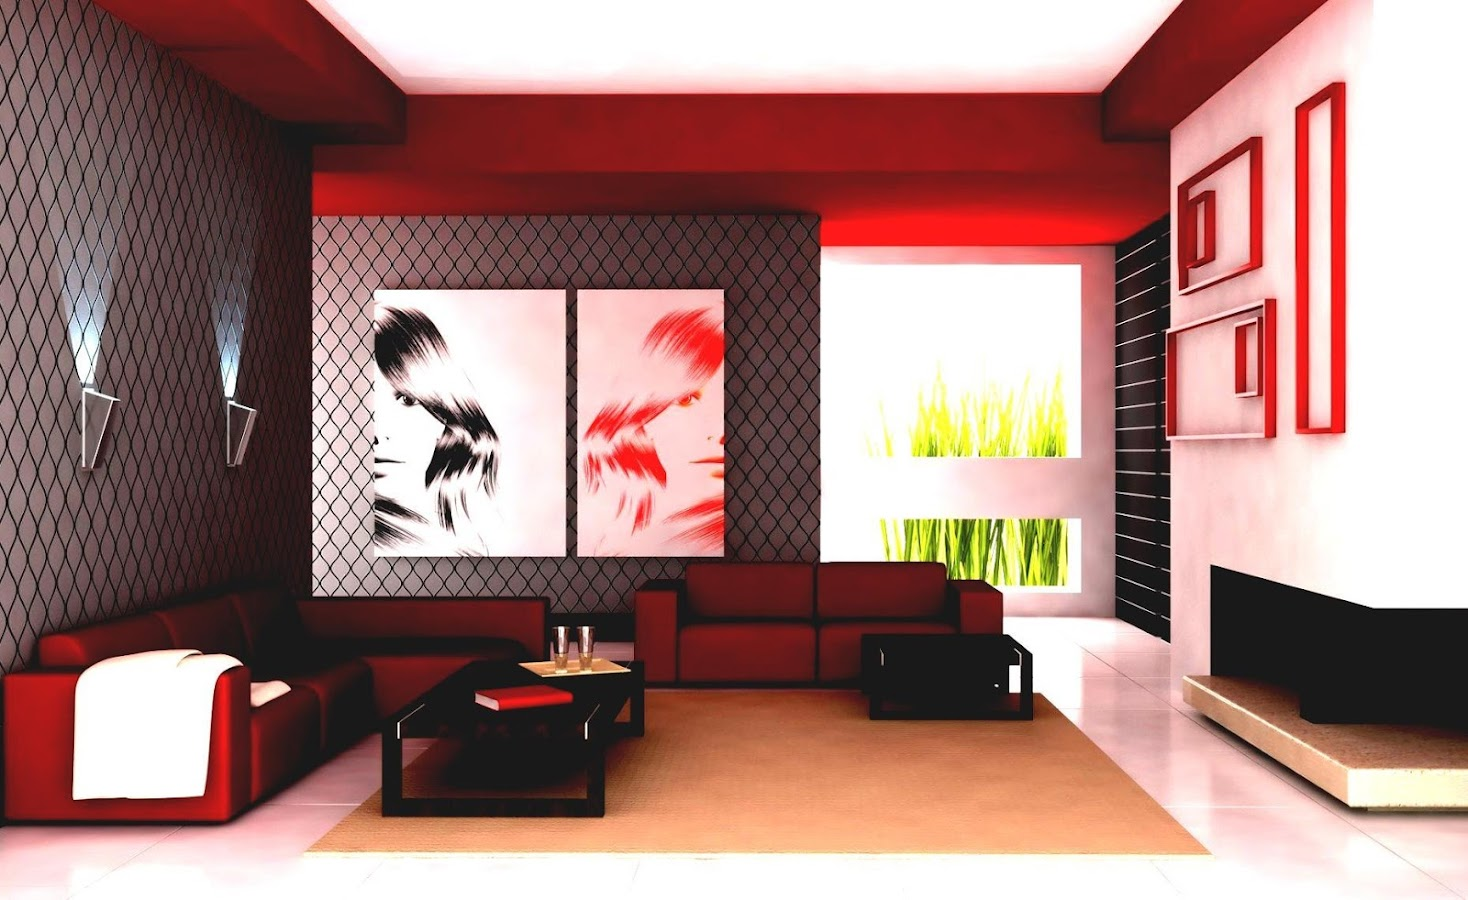 Planner 3D   Interior Design  screenshot. Planner 3D   Interior Design   Android Apps on Google Play